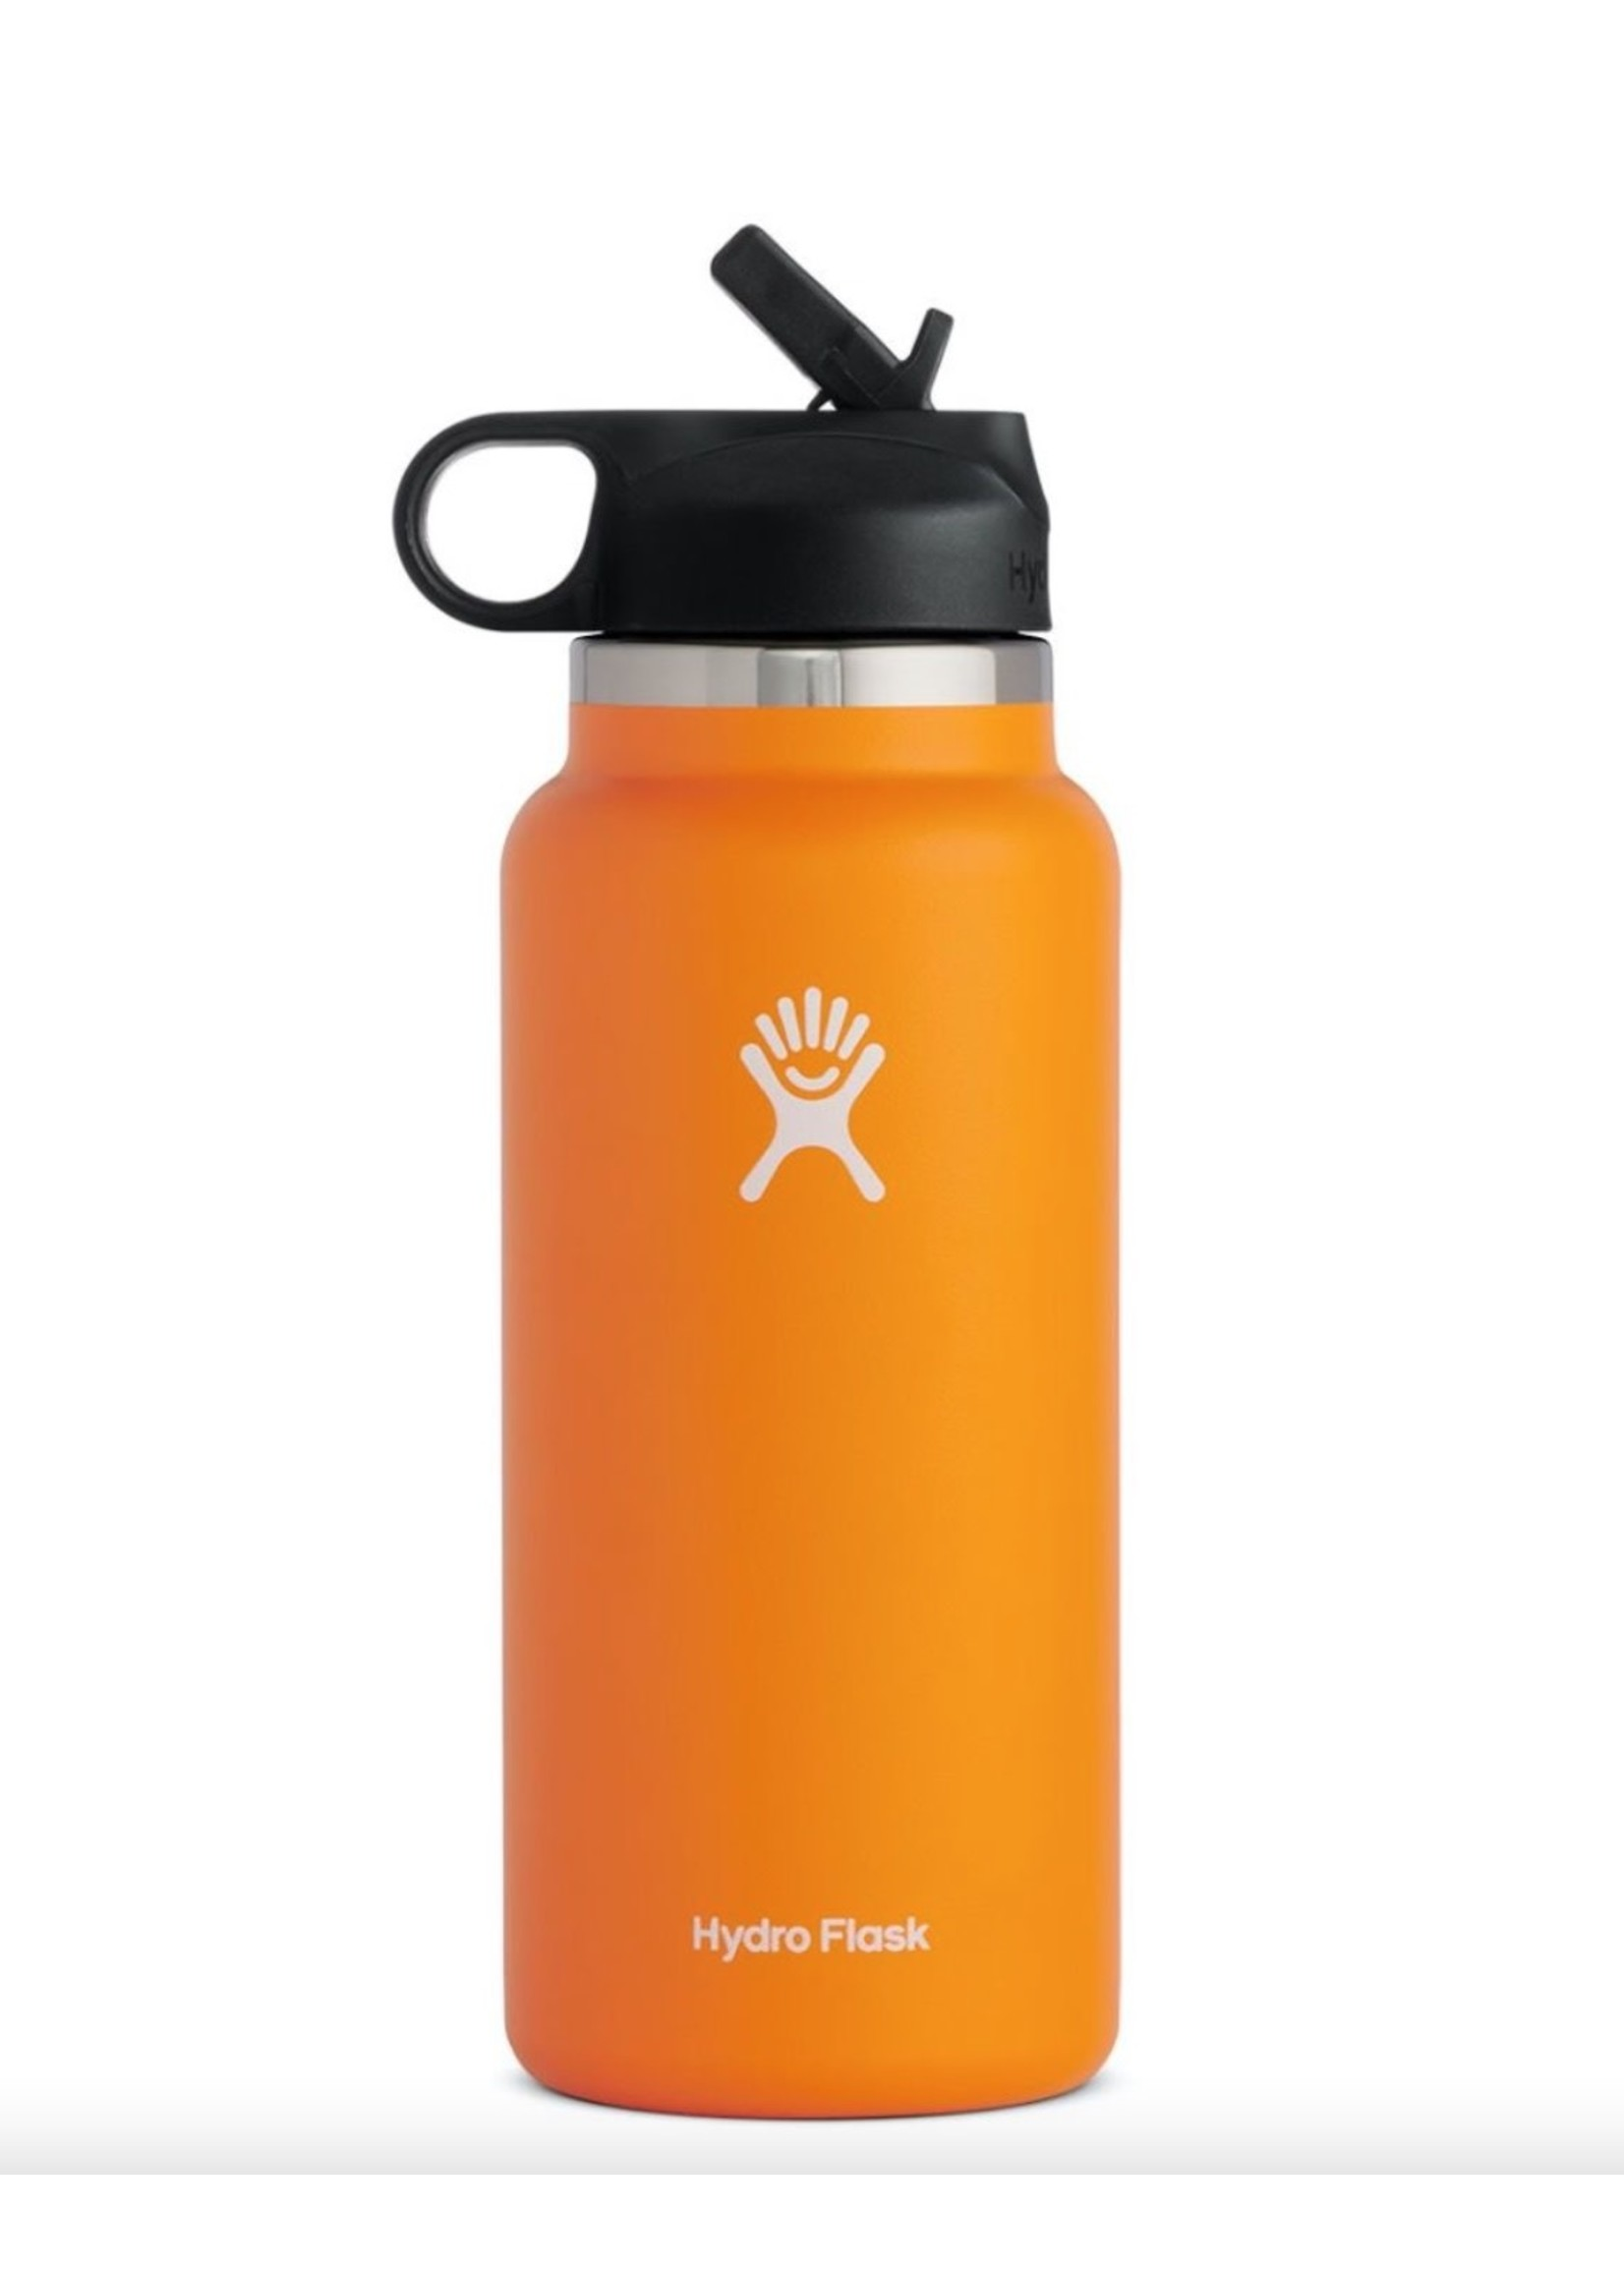 Hydro Flask 32 oz Wide Mouth 2.0  Flex Cap Insulated Stainless Steel Bottle in Clementine